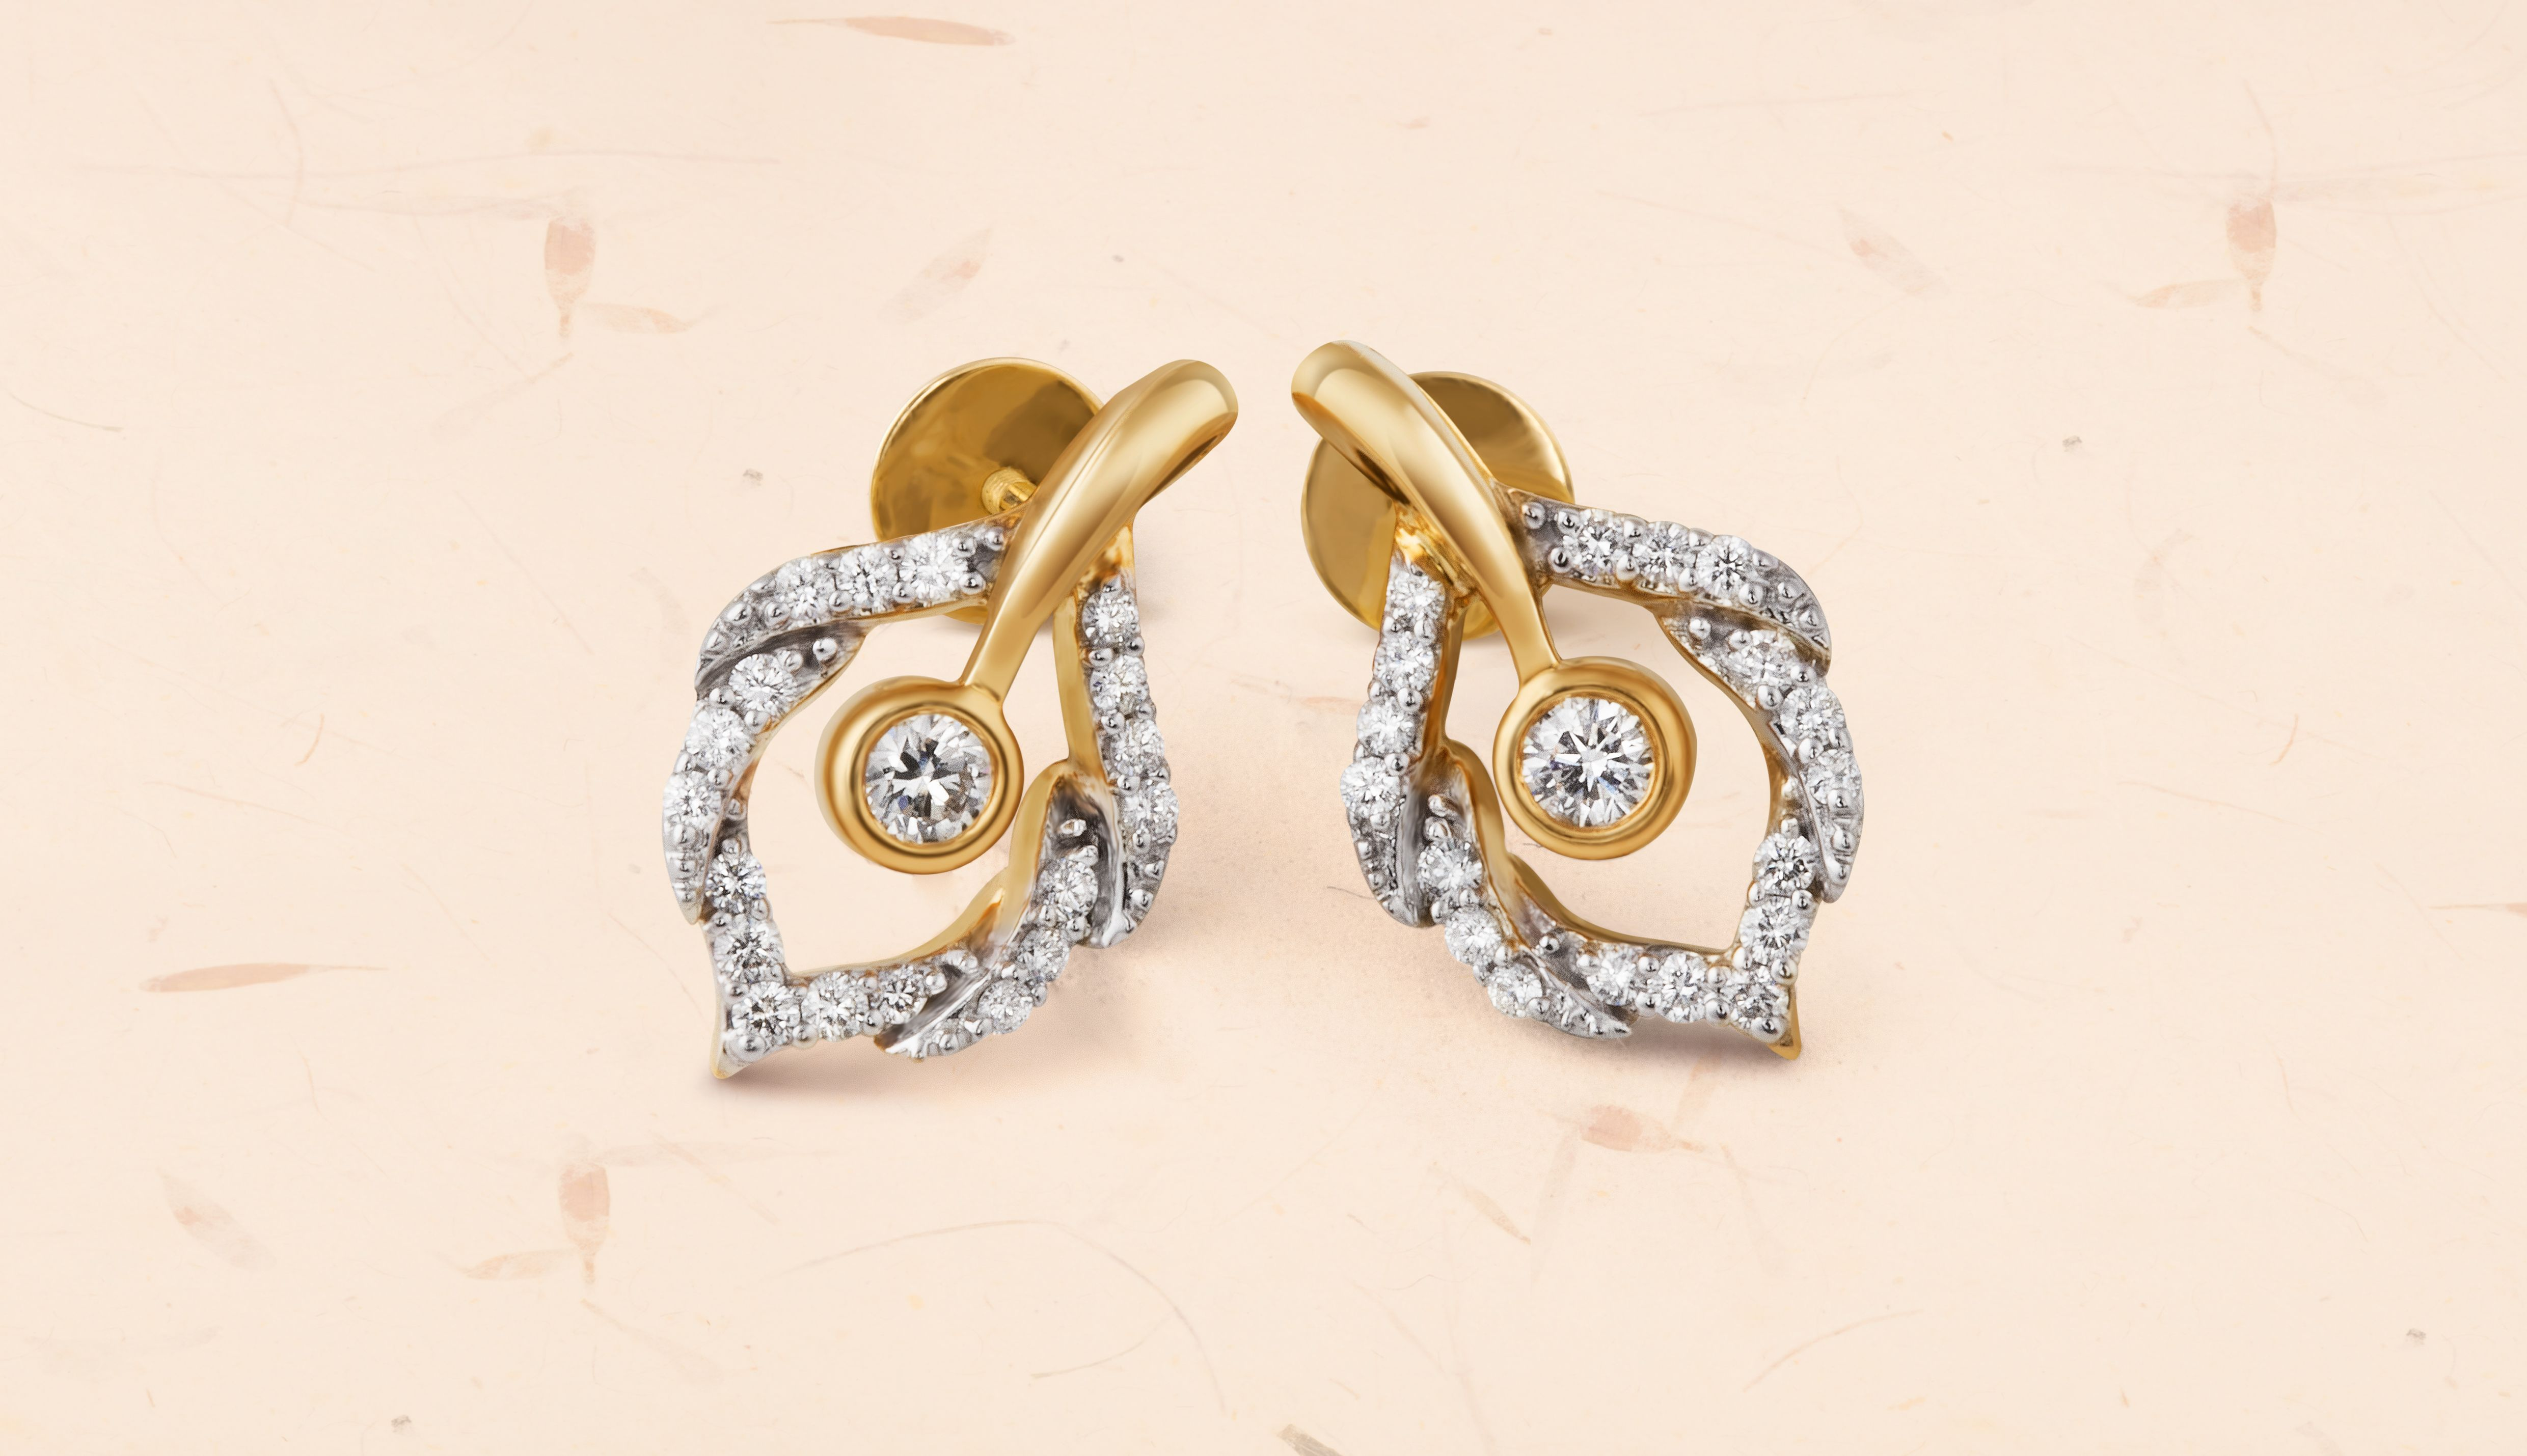 Tanishqus uttara collection presents scintillating diamonds set in